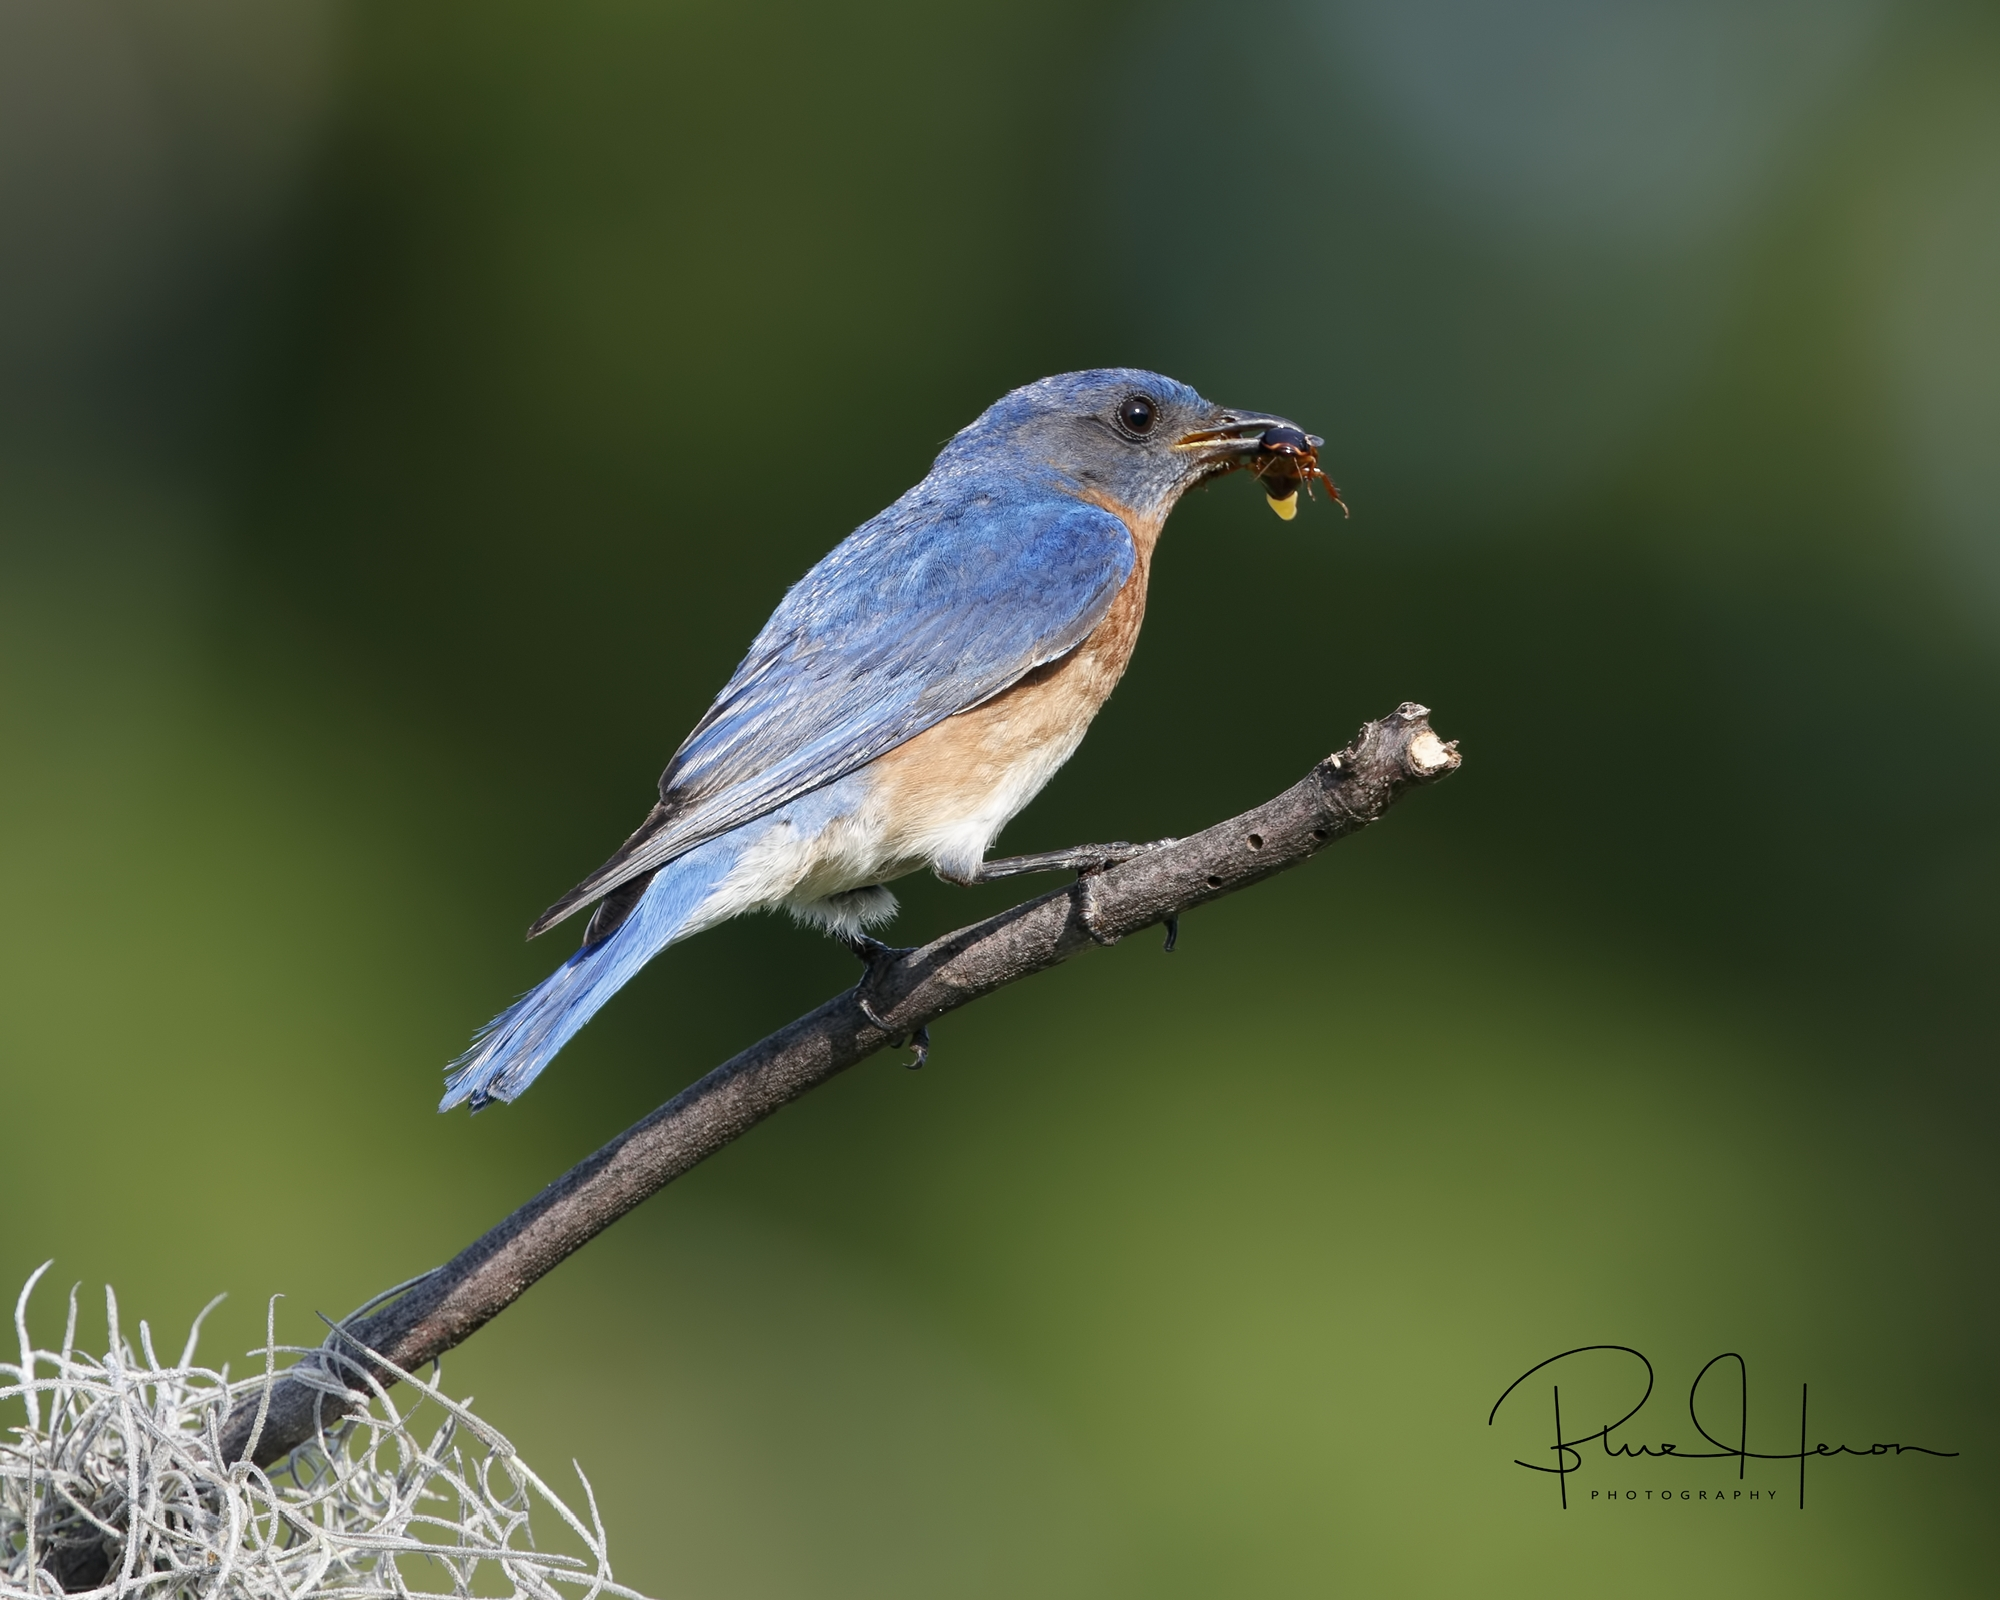 Daddy Bluebird is always on watch and providing for the babes..Just like our heavenly Father does..